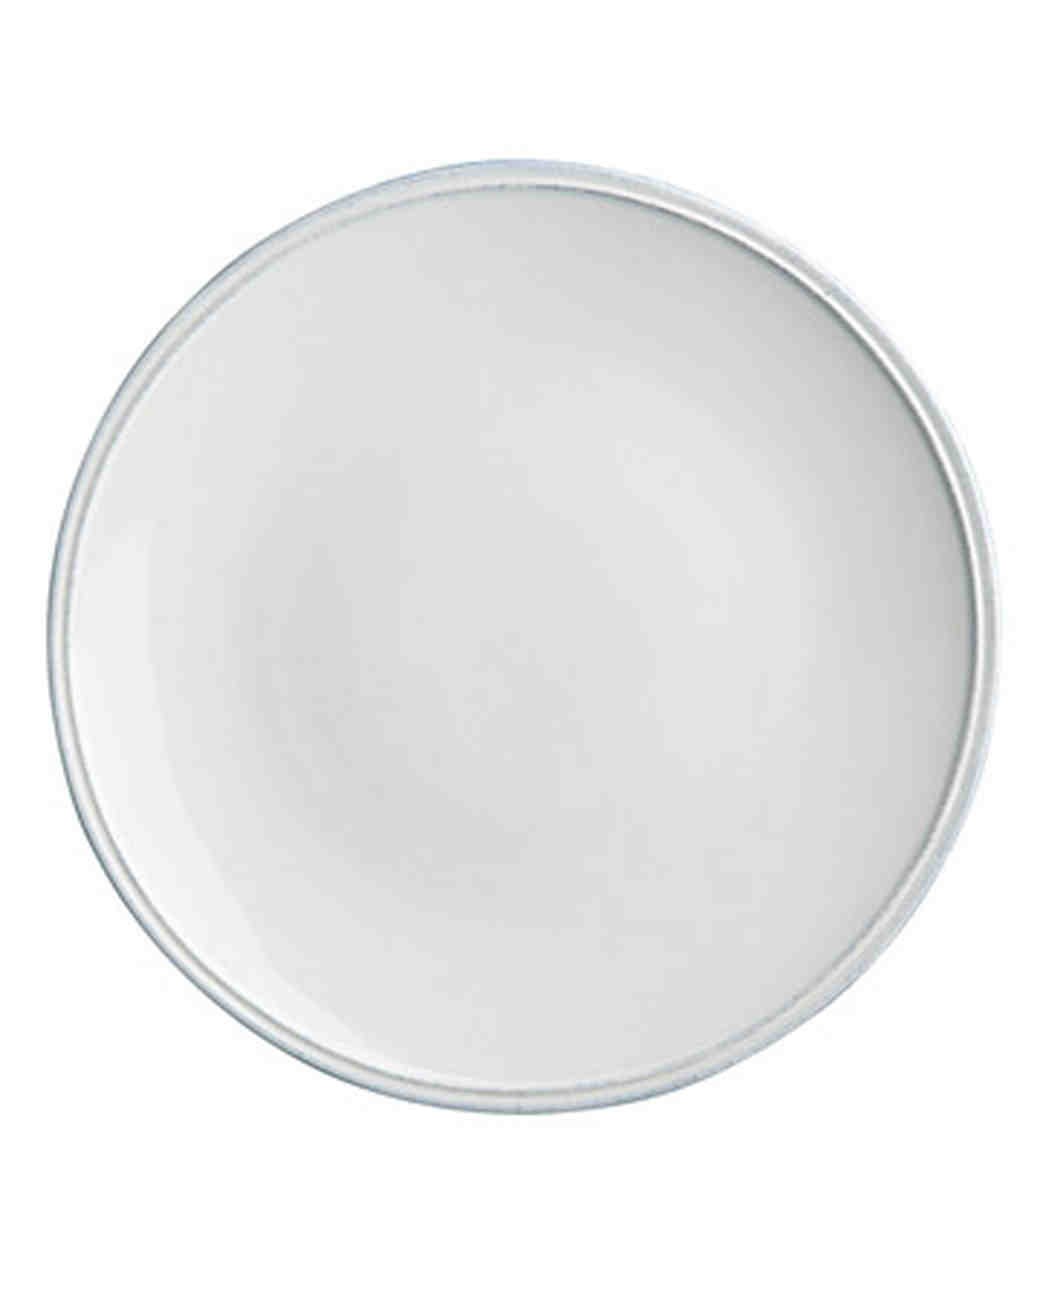 msw_sum10_covewhtdinnerplates9_ab.jpg